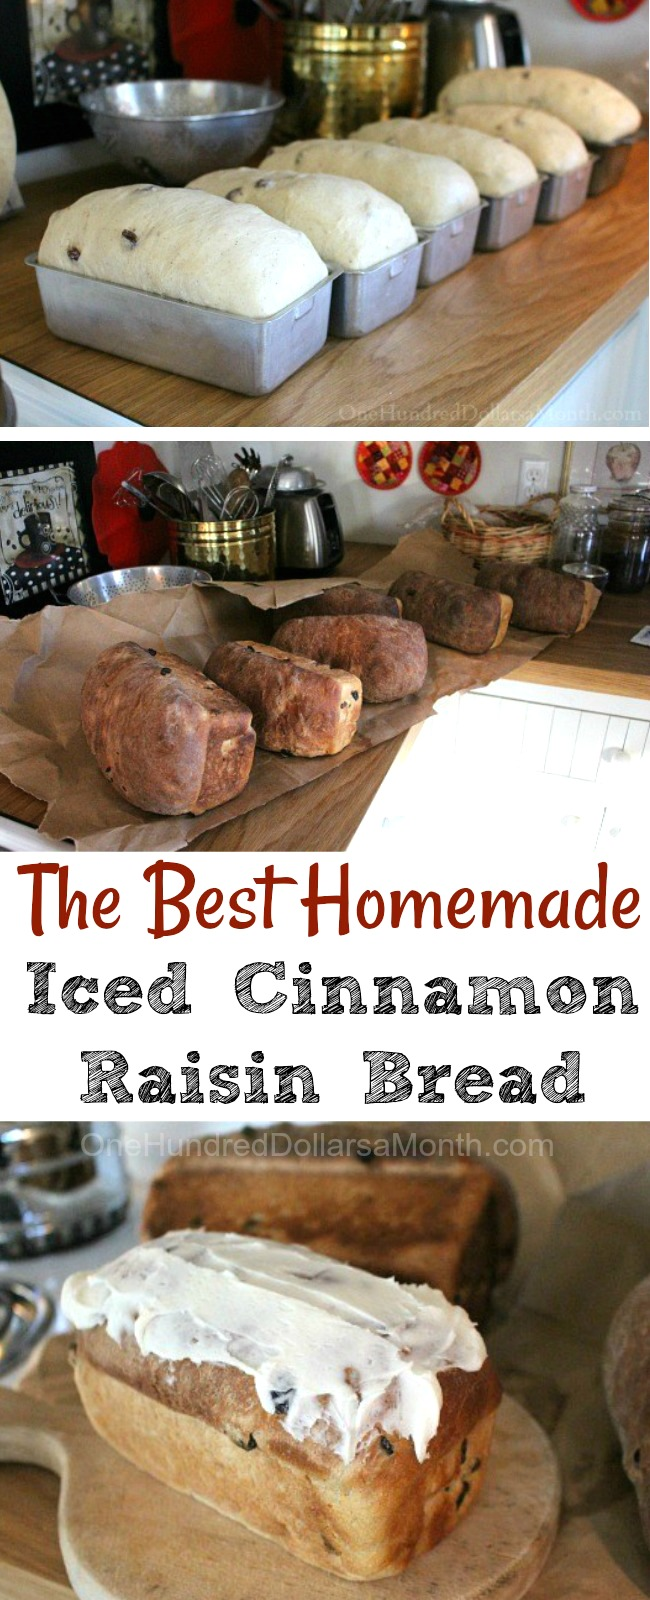 Shirley's Iced Cinnamon Raisin Bread